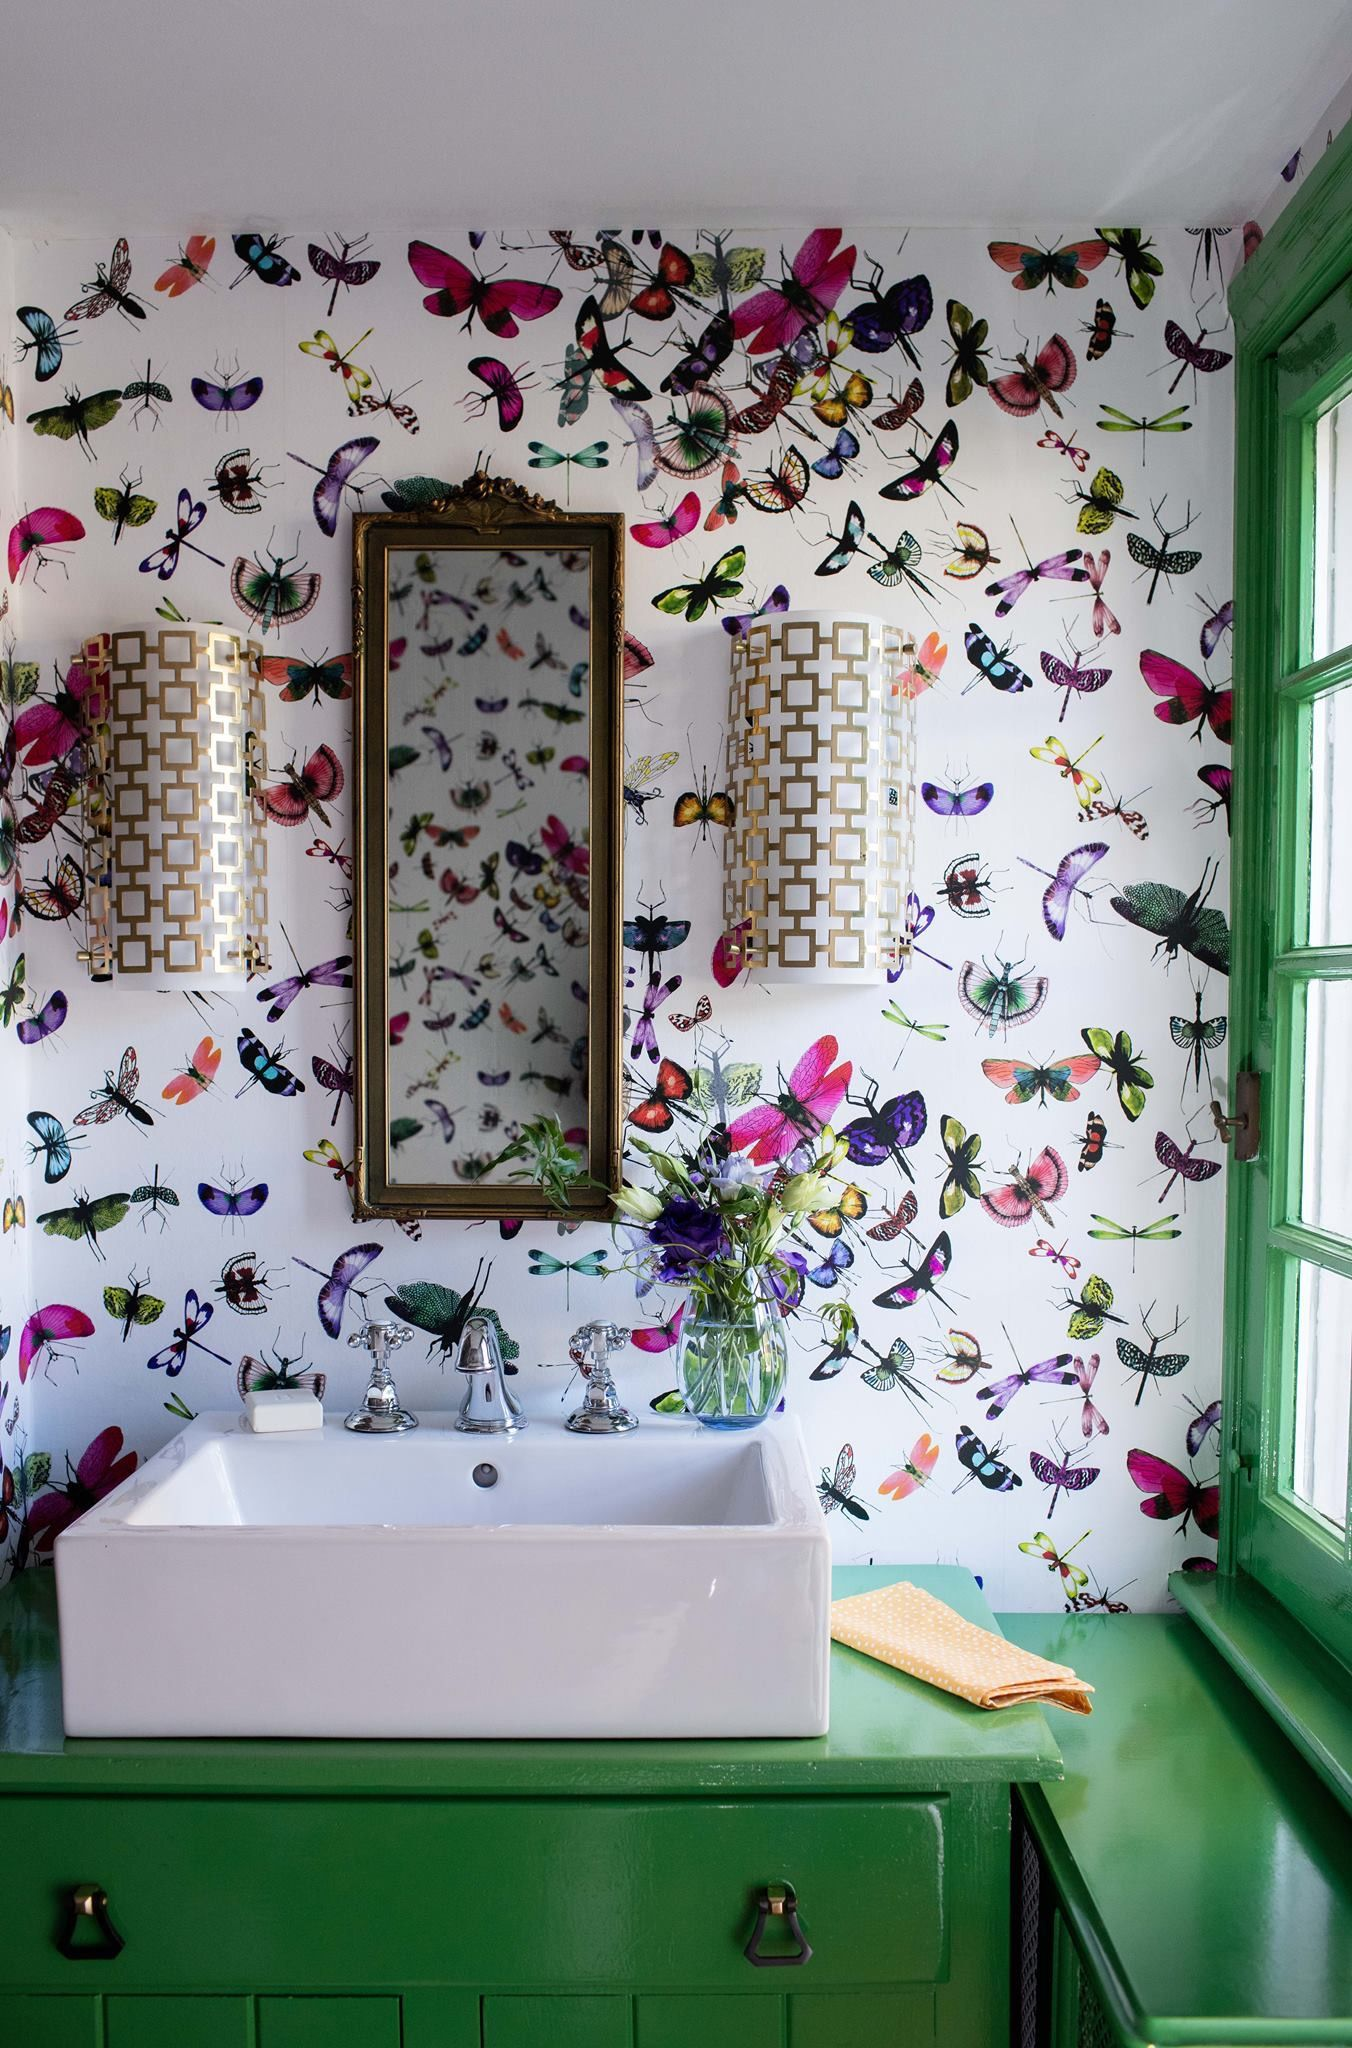 Better Homes And Gardens Bathroom Remodel. Awesome Butterfly Wallpaper For A Small Bathroom With A Bold Spring Flavor From Better Home And Gardens